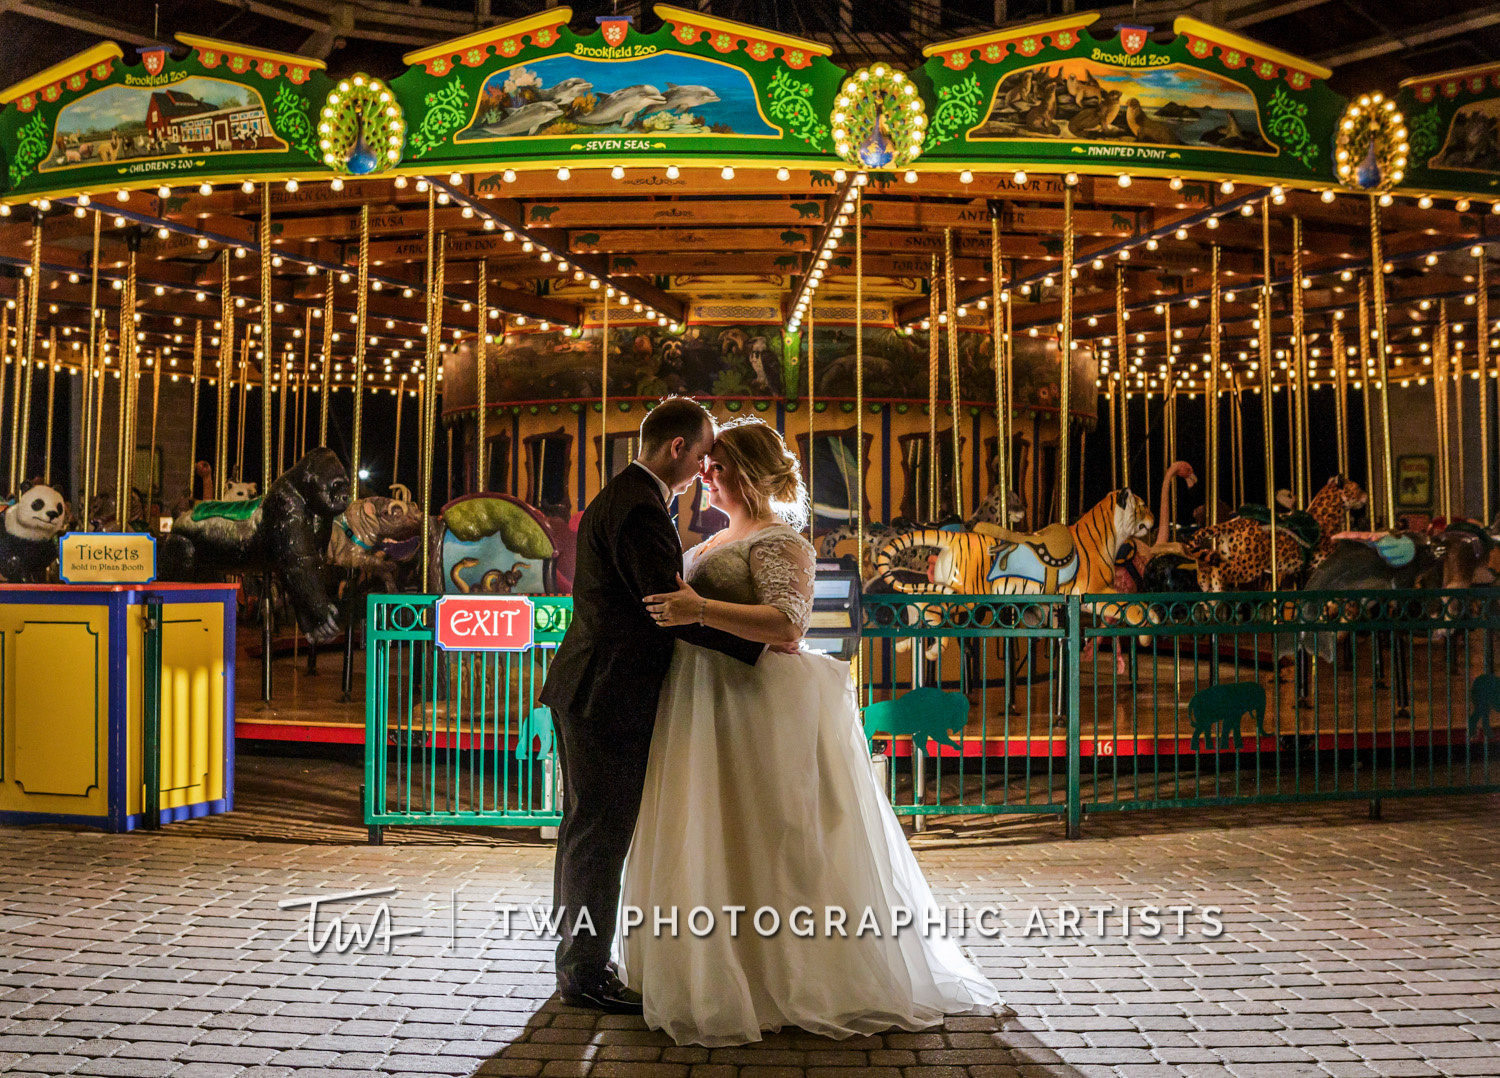 Chicago-Wedding-Photographer-TWA-Photographic-Artists-Brookfield-Zoo_Taylor_Harris_HM-0770